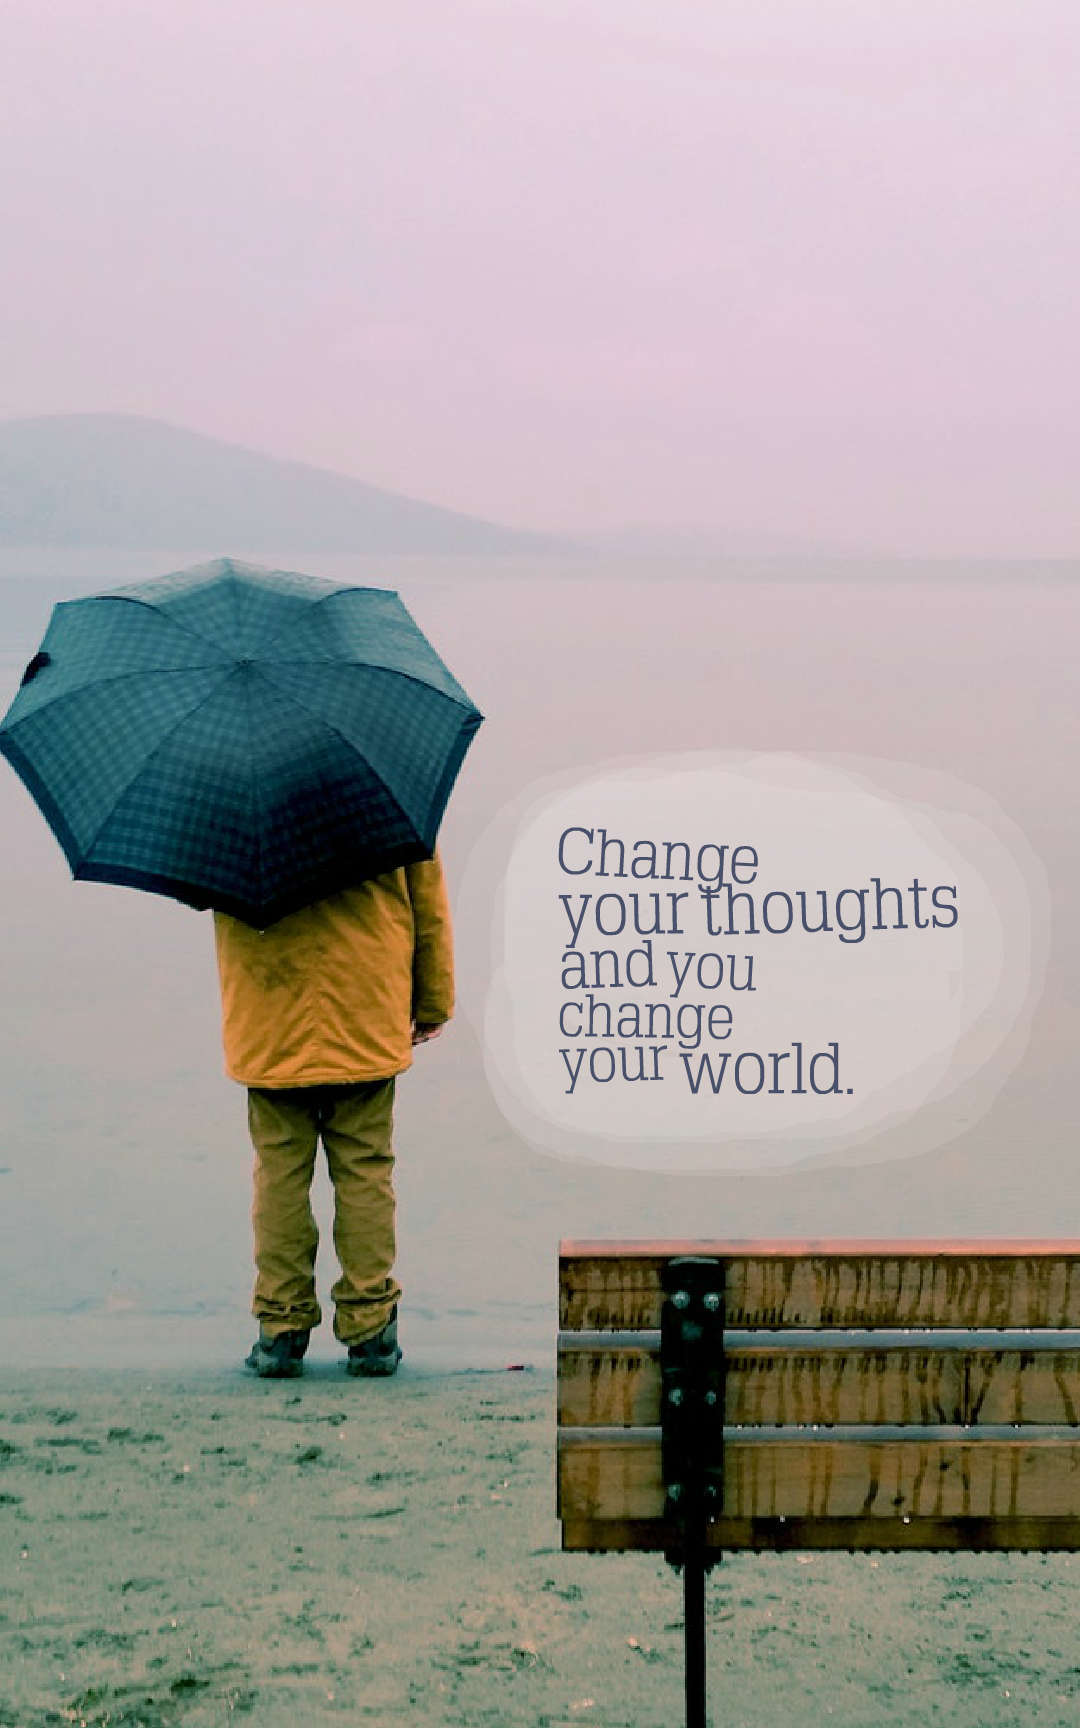 Quotes image of Change your thoughts and you change your world.